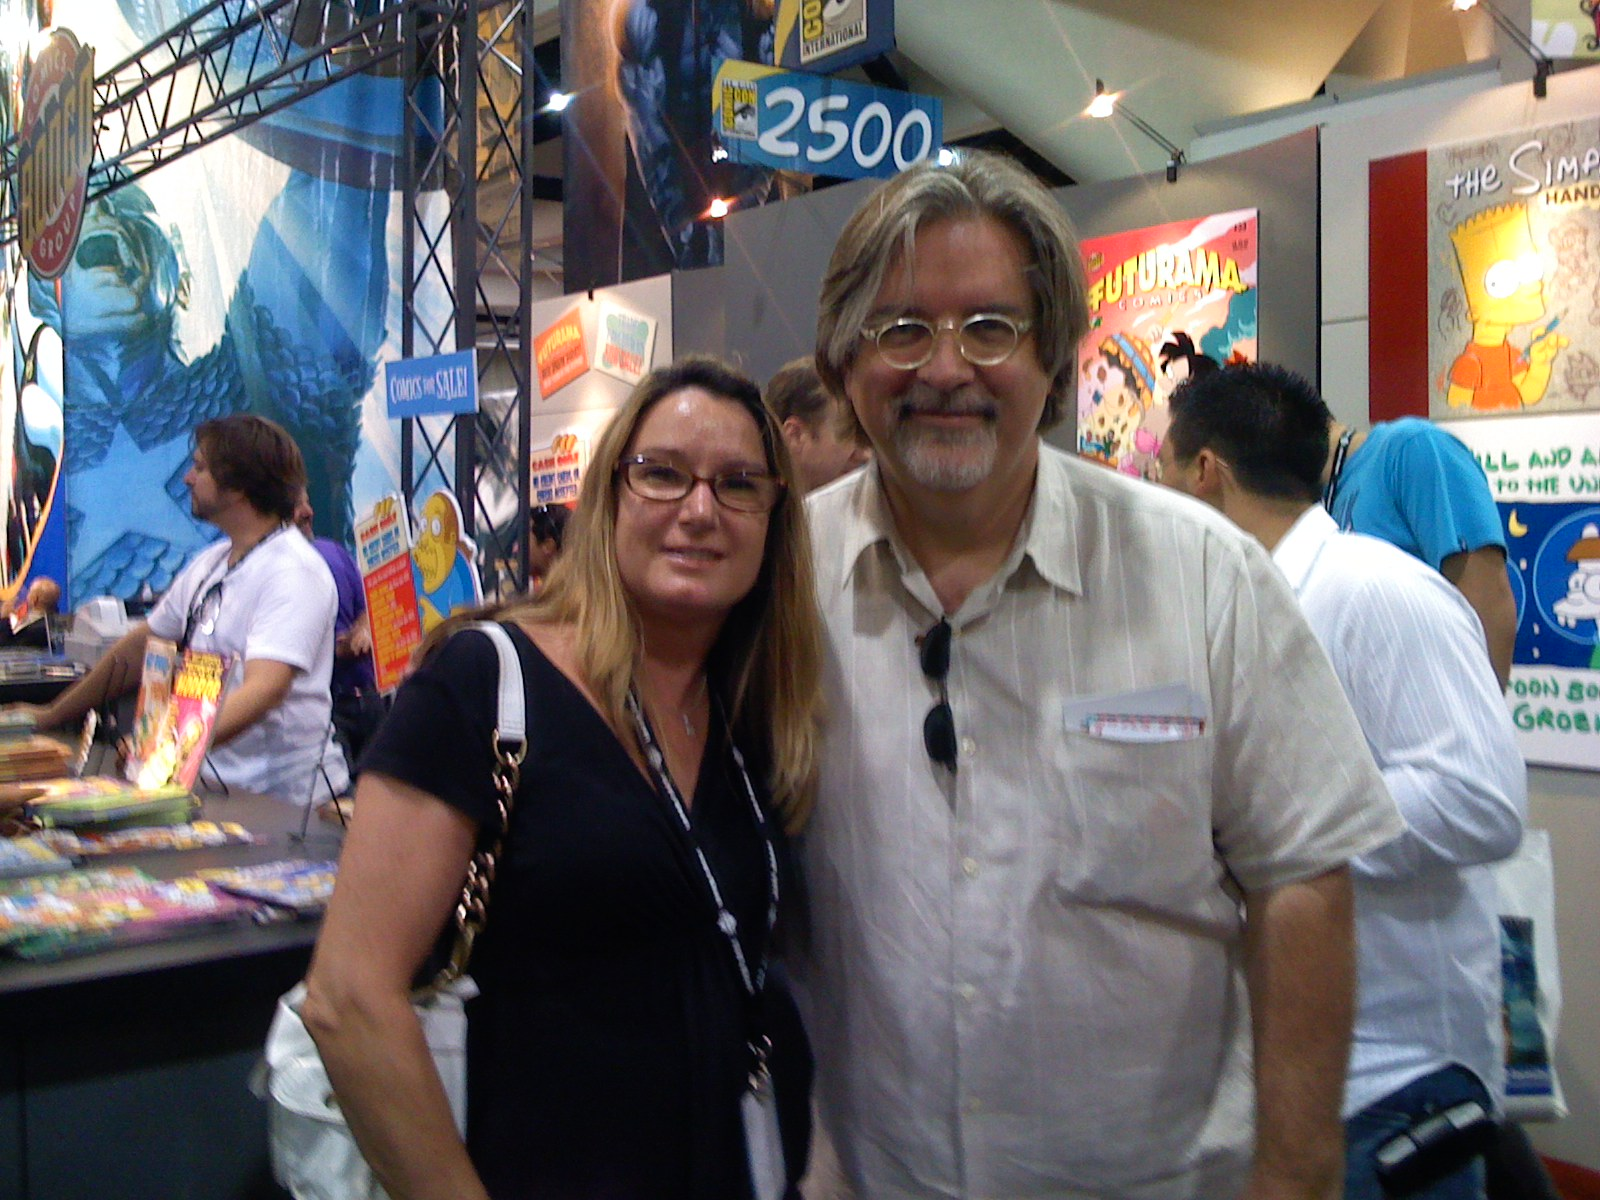 Gillian and Matt Groening (The Simpson's) at COMICON